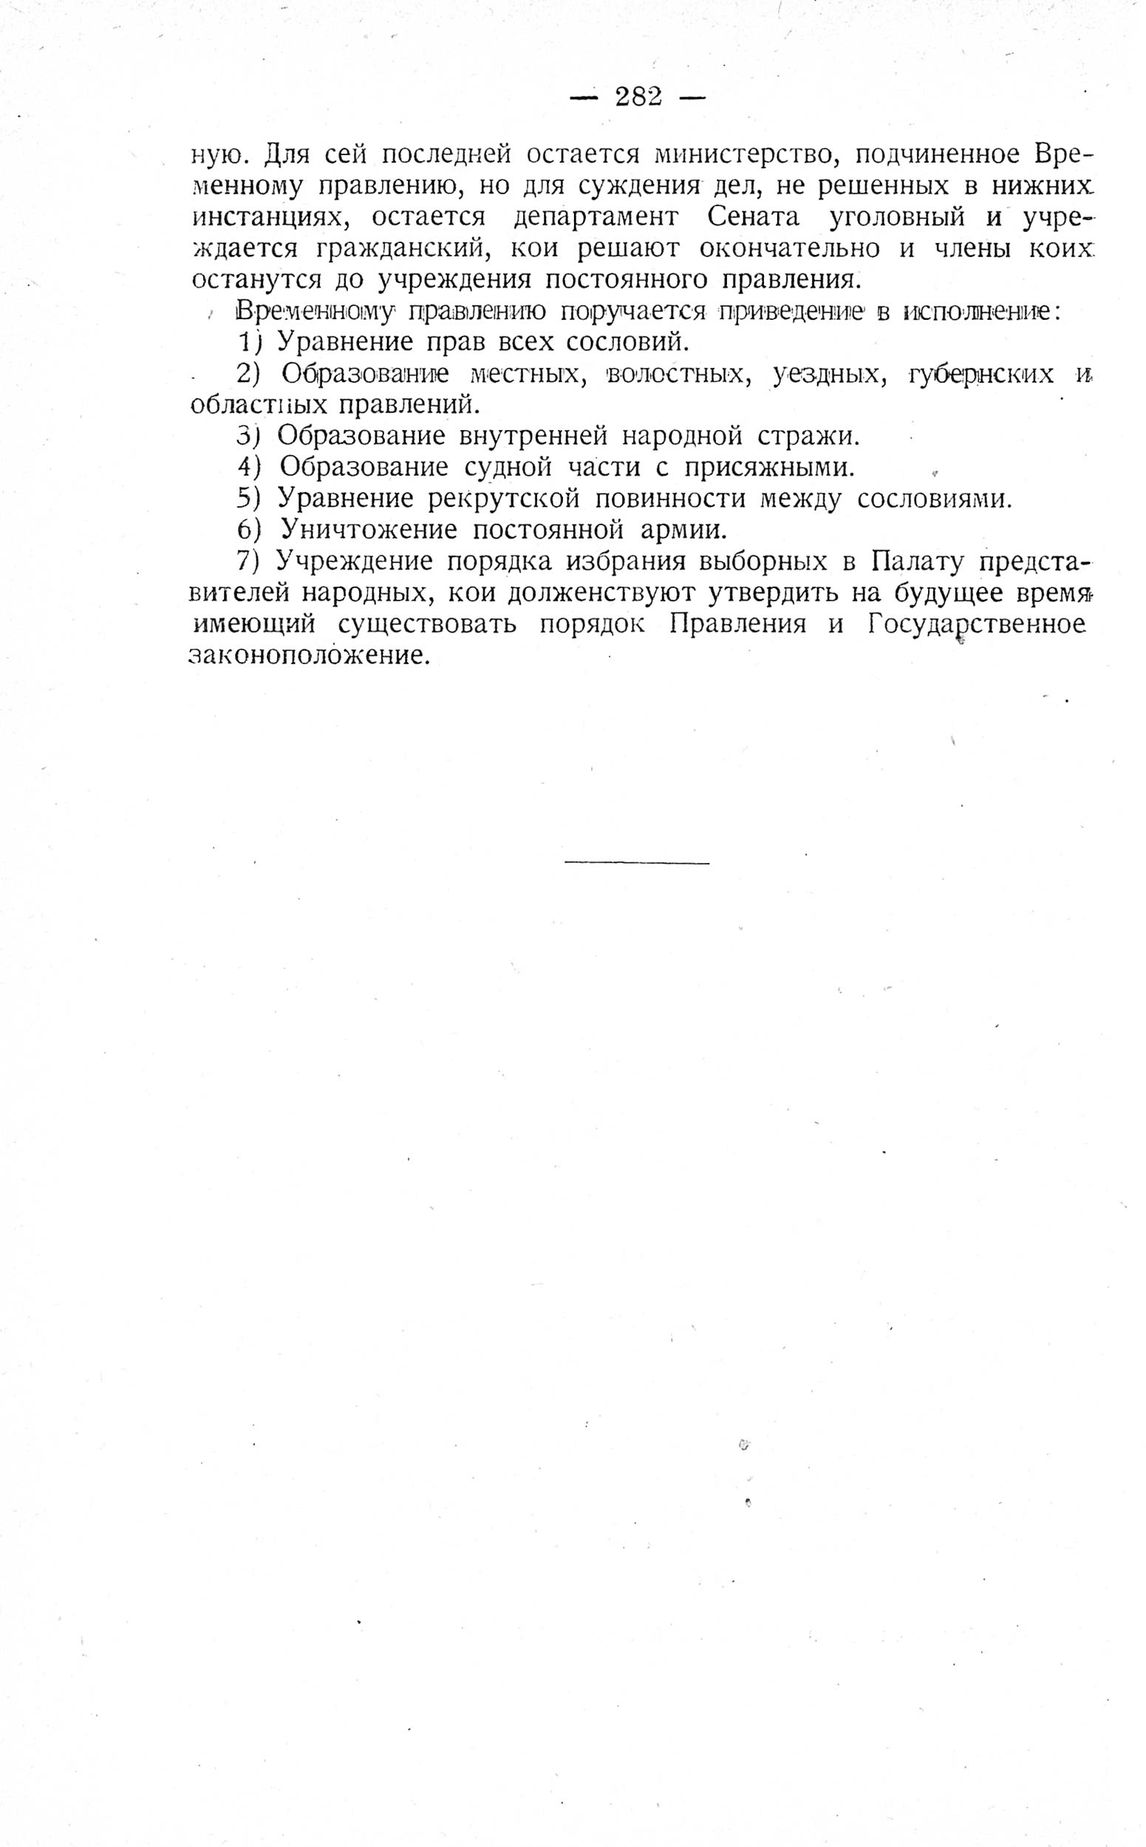 http://elib.shpl.ru/pages/625865/zooms/7